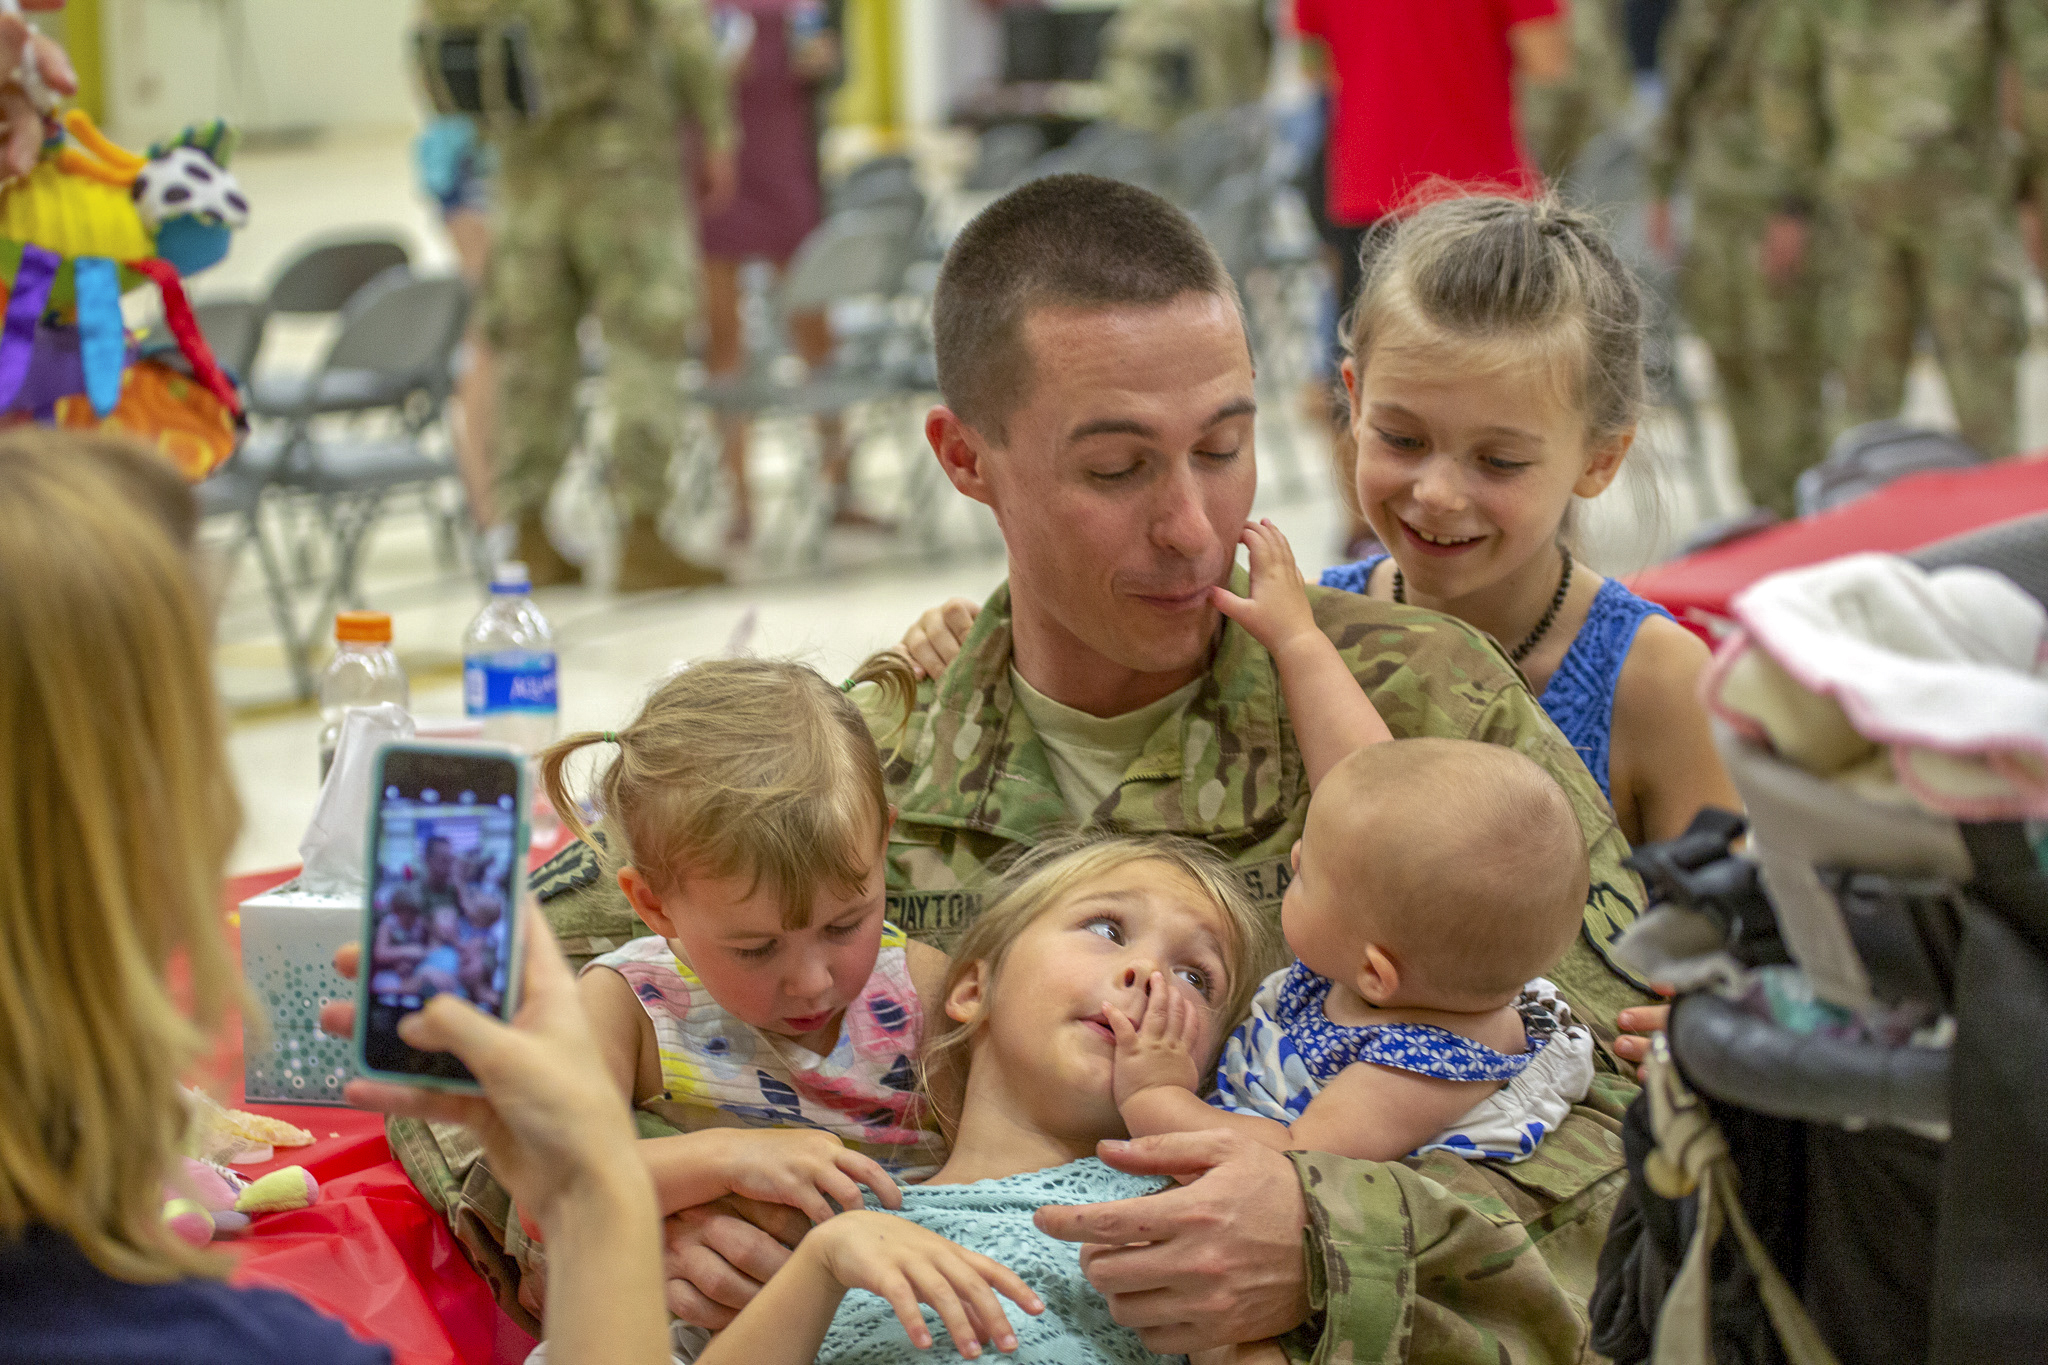 A soldier of Bravo Company 'Hillclimbers', 3-25 Aviation Regiment embraces his family at a ceremony honoring the troops prior to their deployment at Wheeler Army Airfield Jun. 5. The 'Hillclimbers' will support Operation Freedom's Sentinel and Operation Resolute Support in the CENTCOM area of responsibility for nine months.